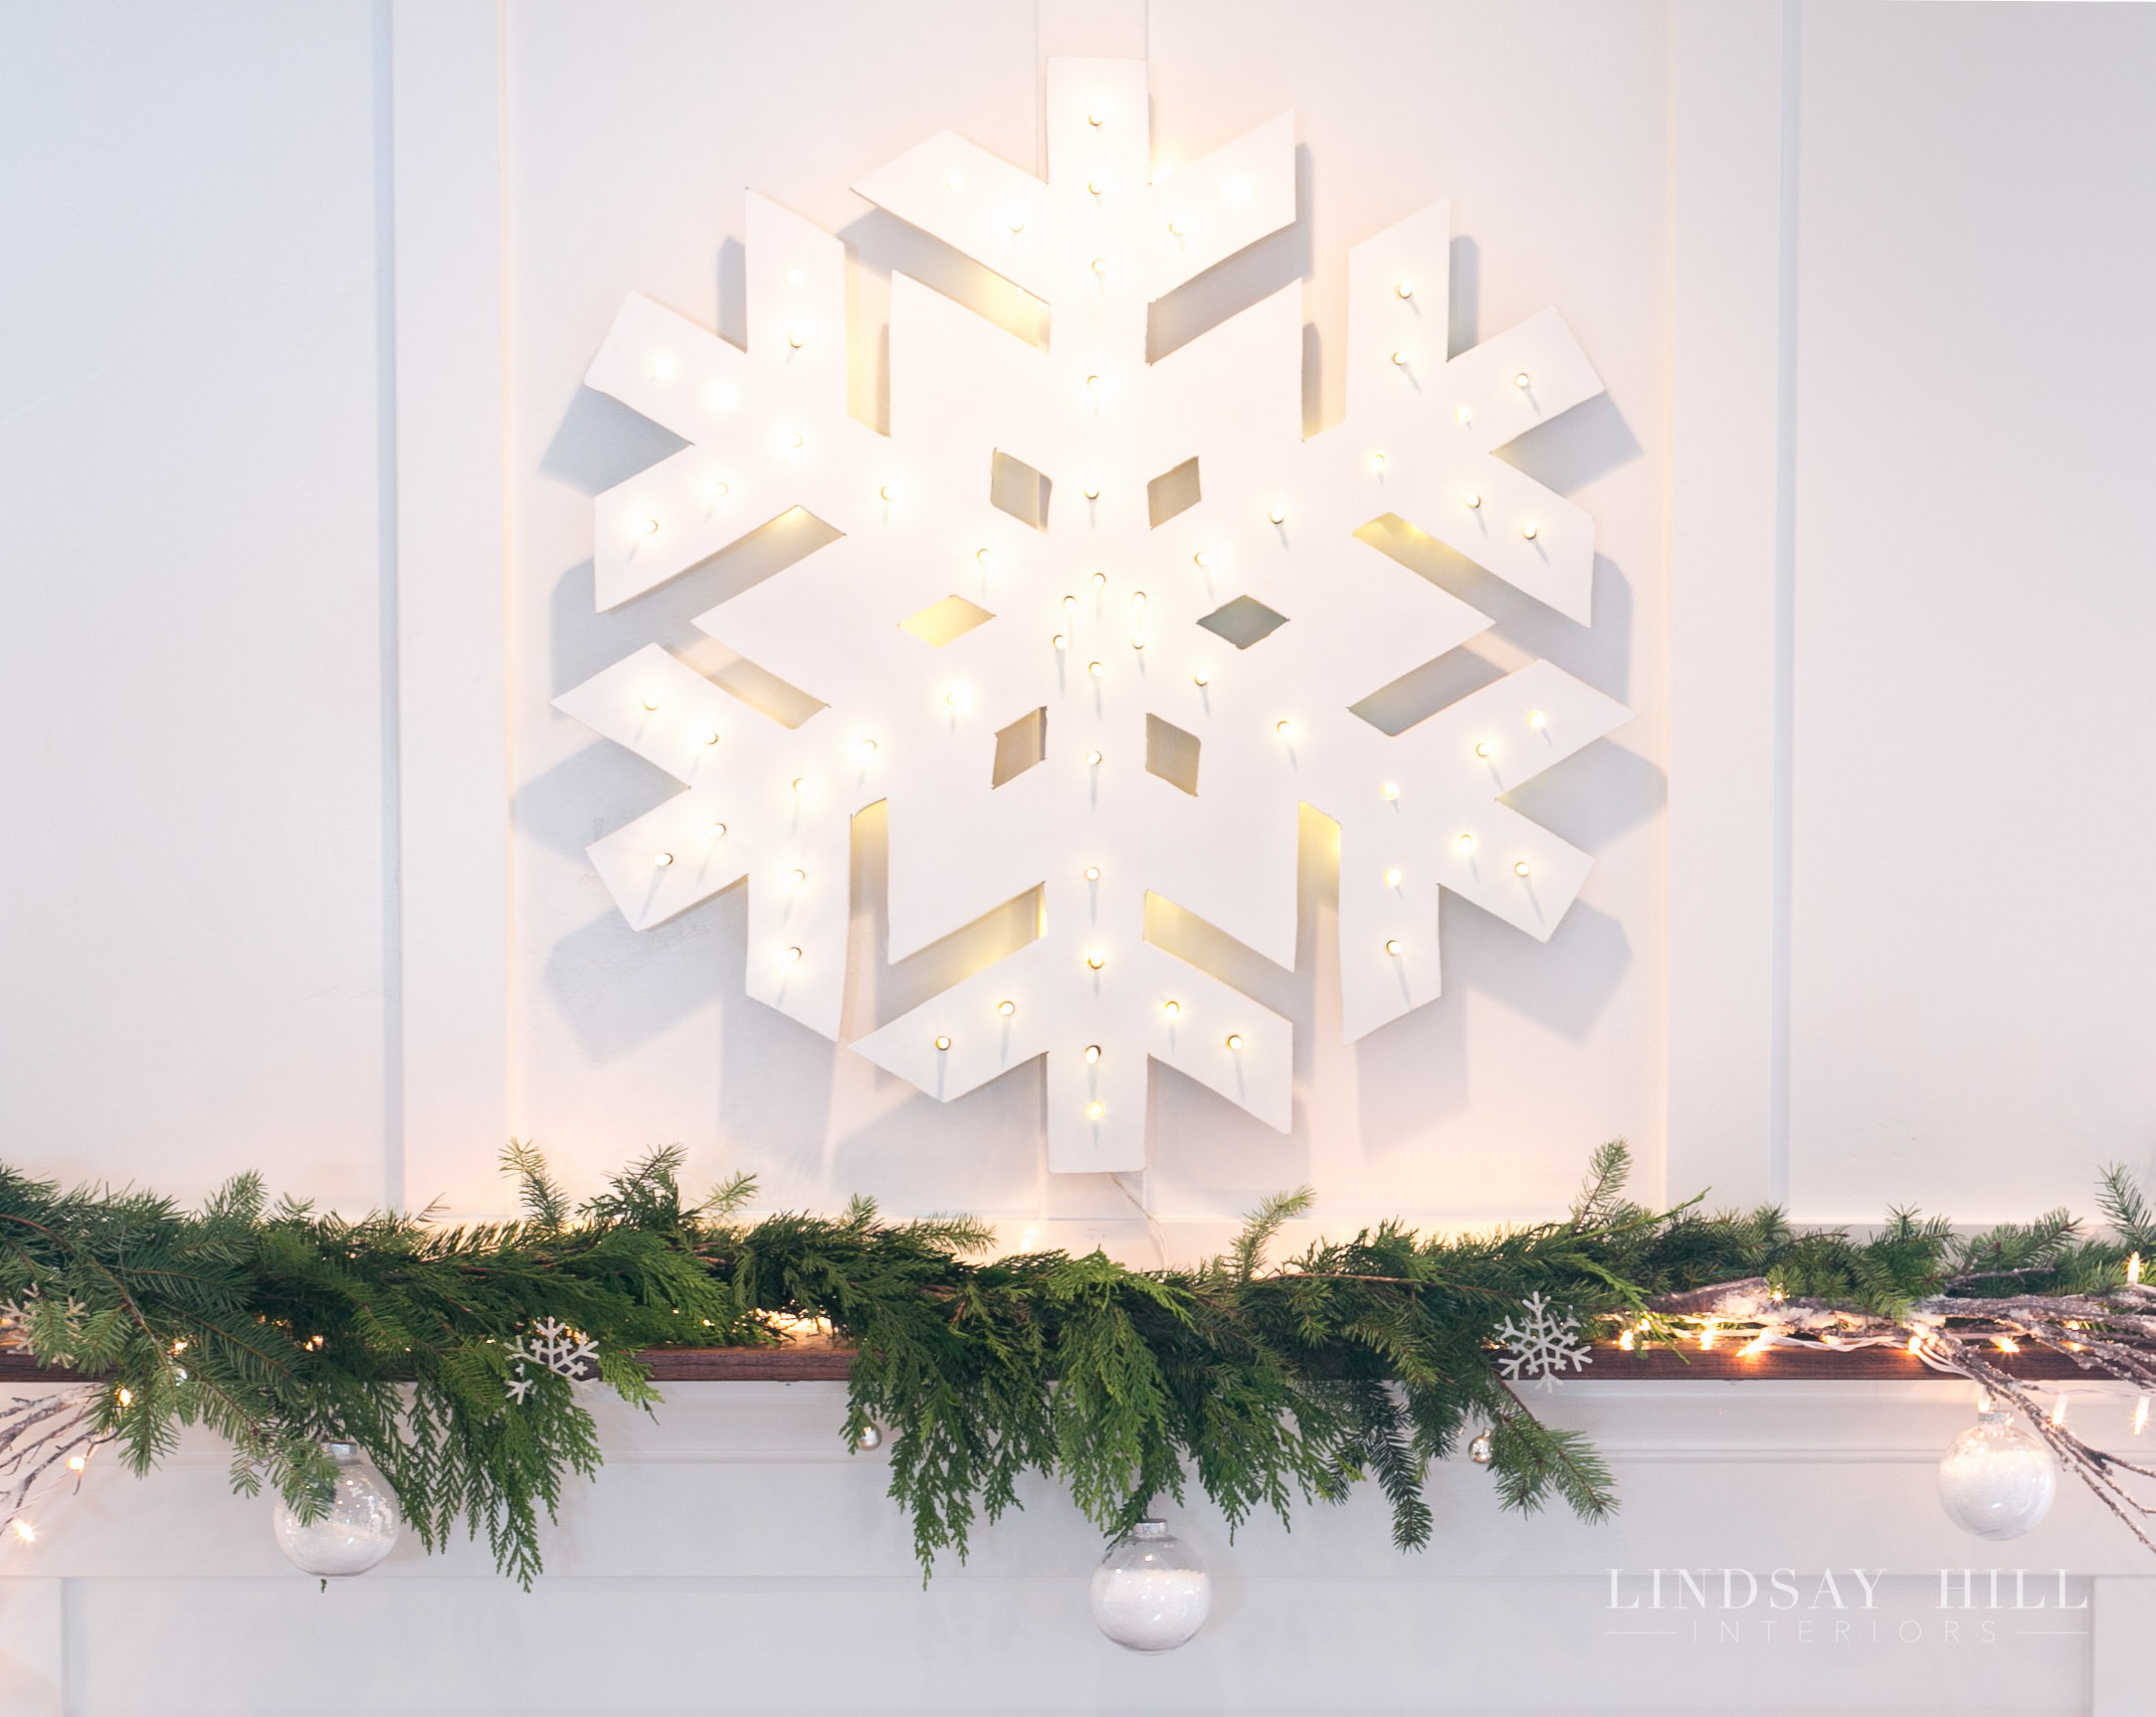 lindsay hill interiors holiday living room mantle snowflake